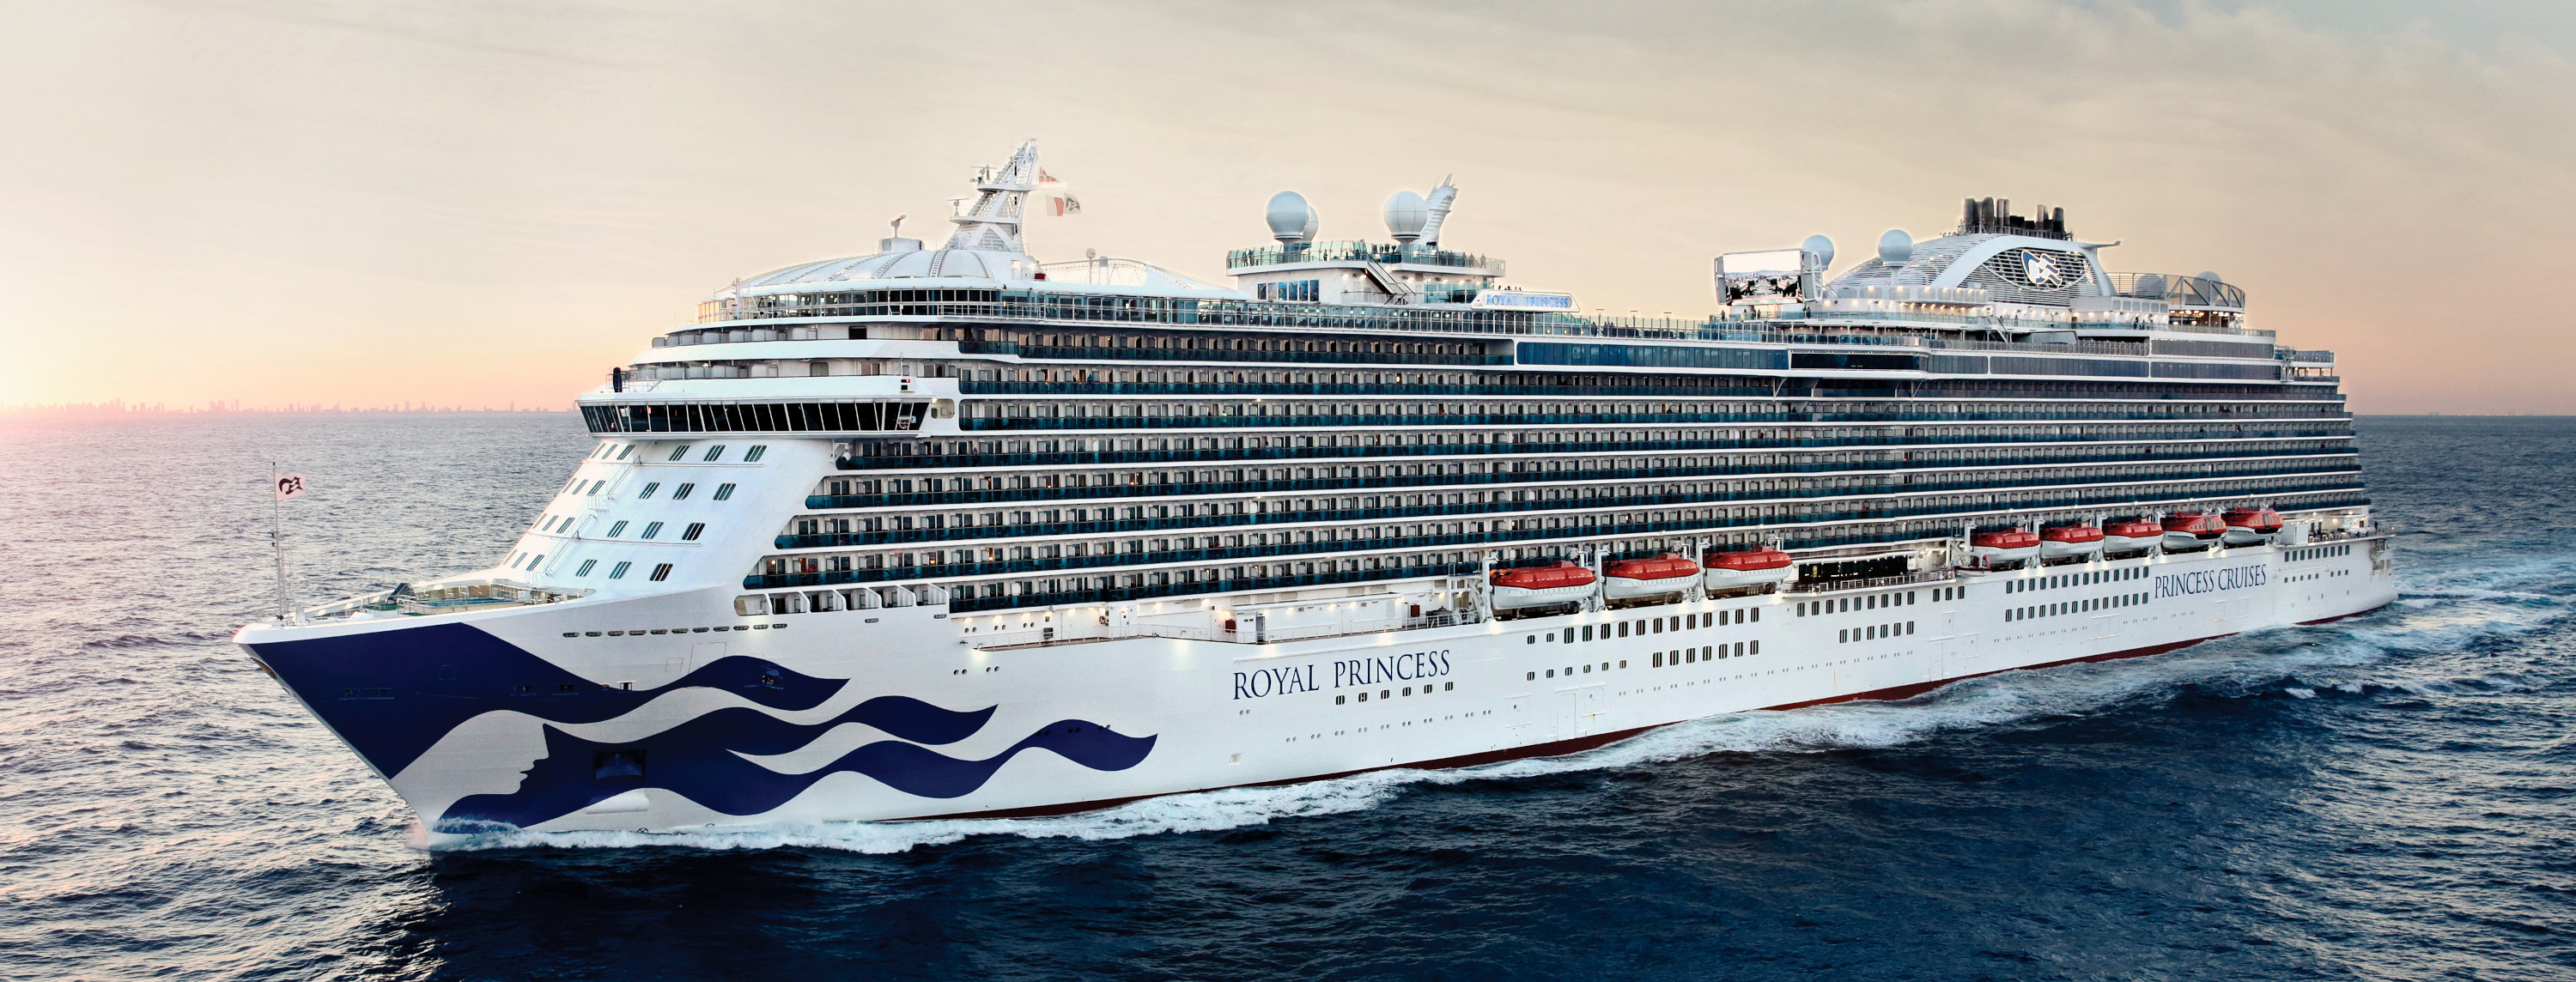 Mexican Riviera Cruise on Royal Princess